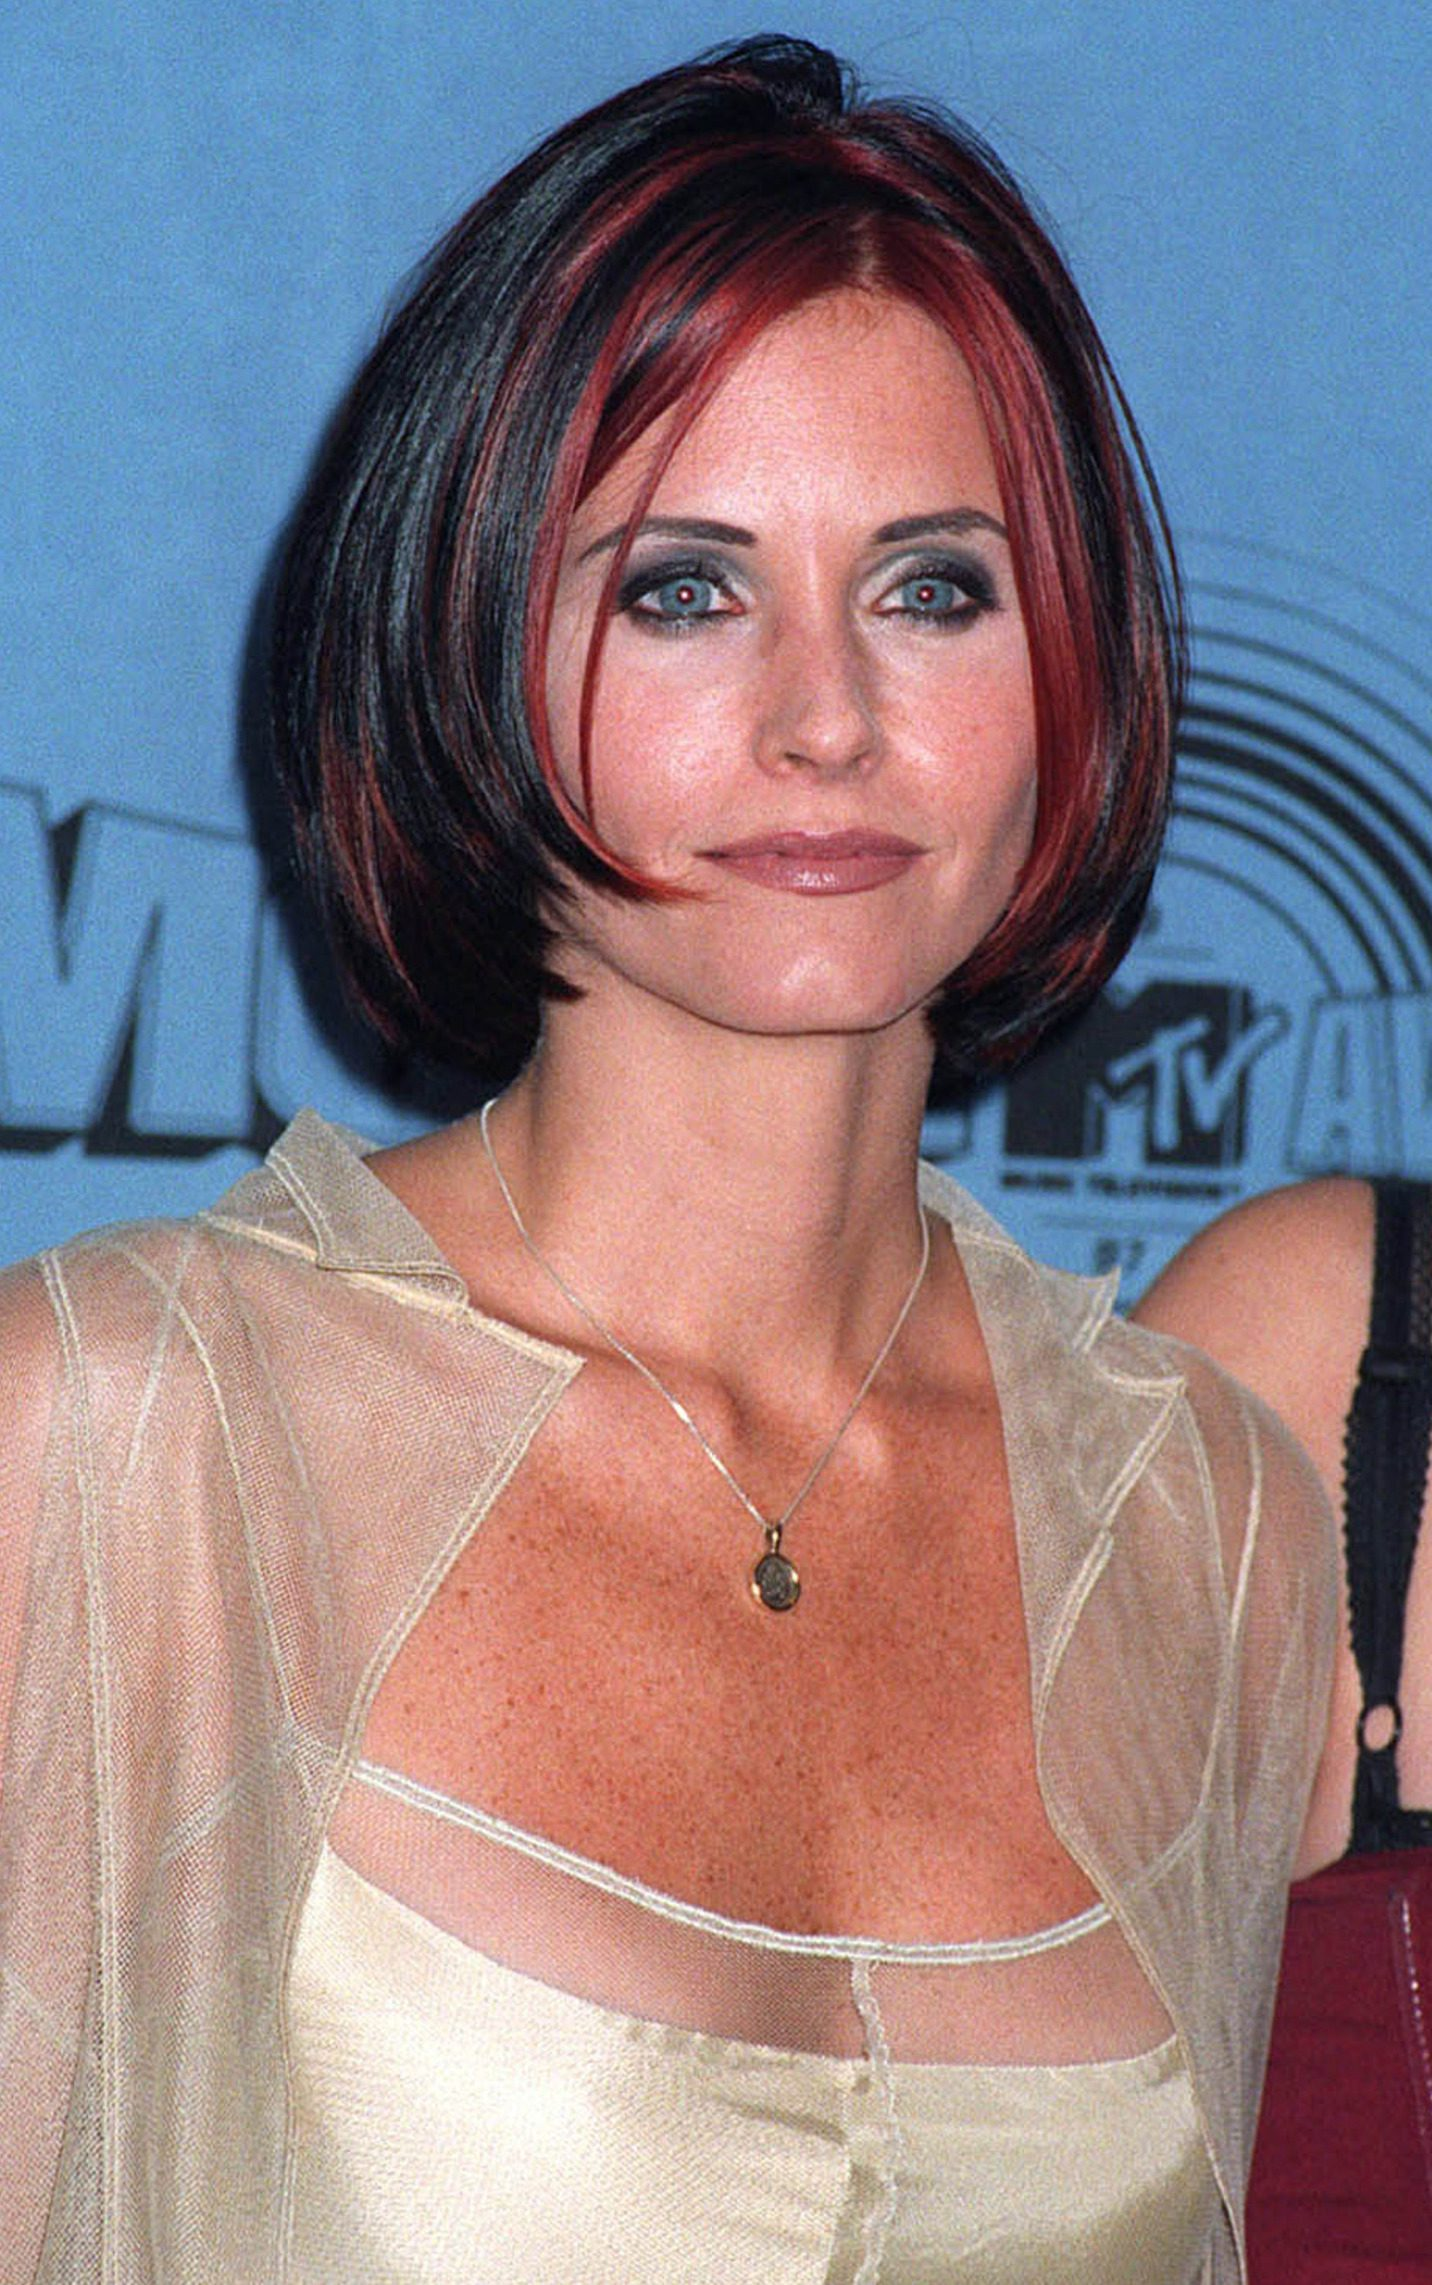 Monica with That Rounded Thin Short Bob